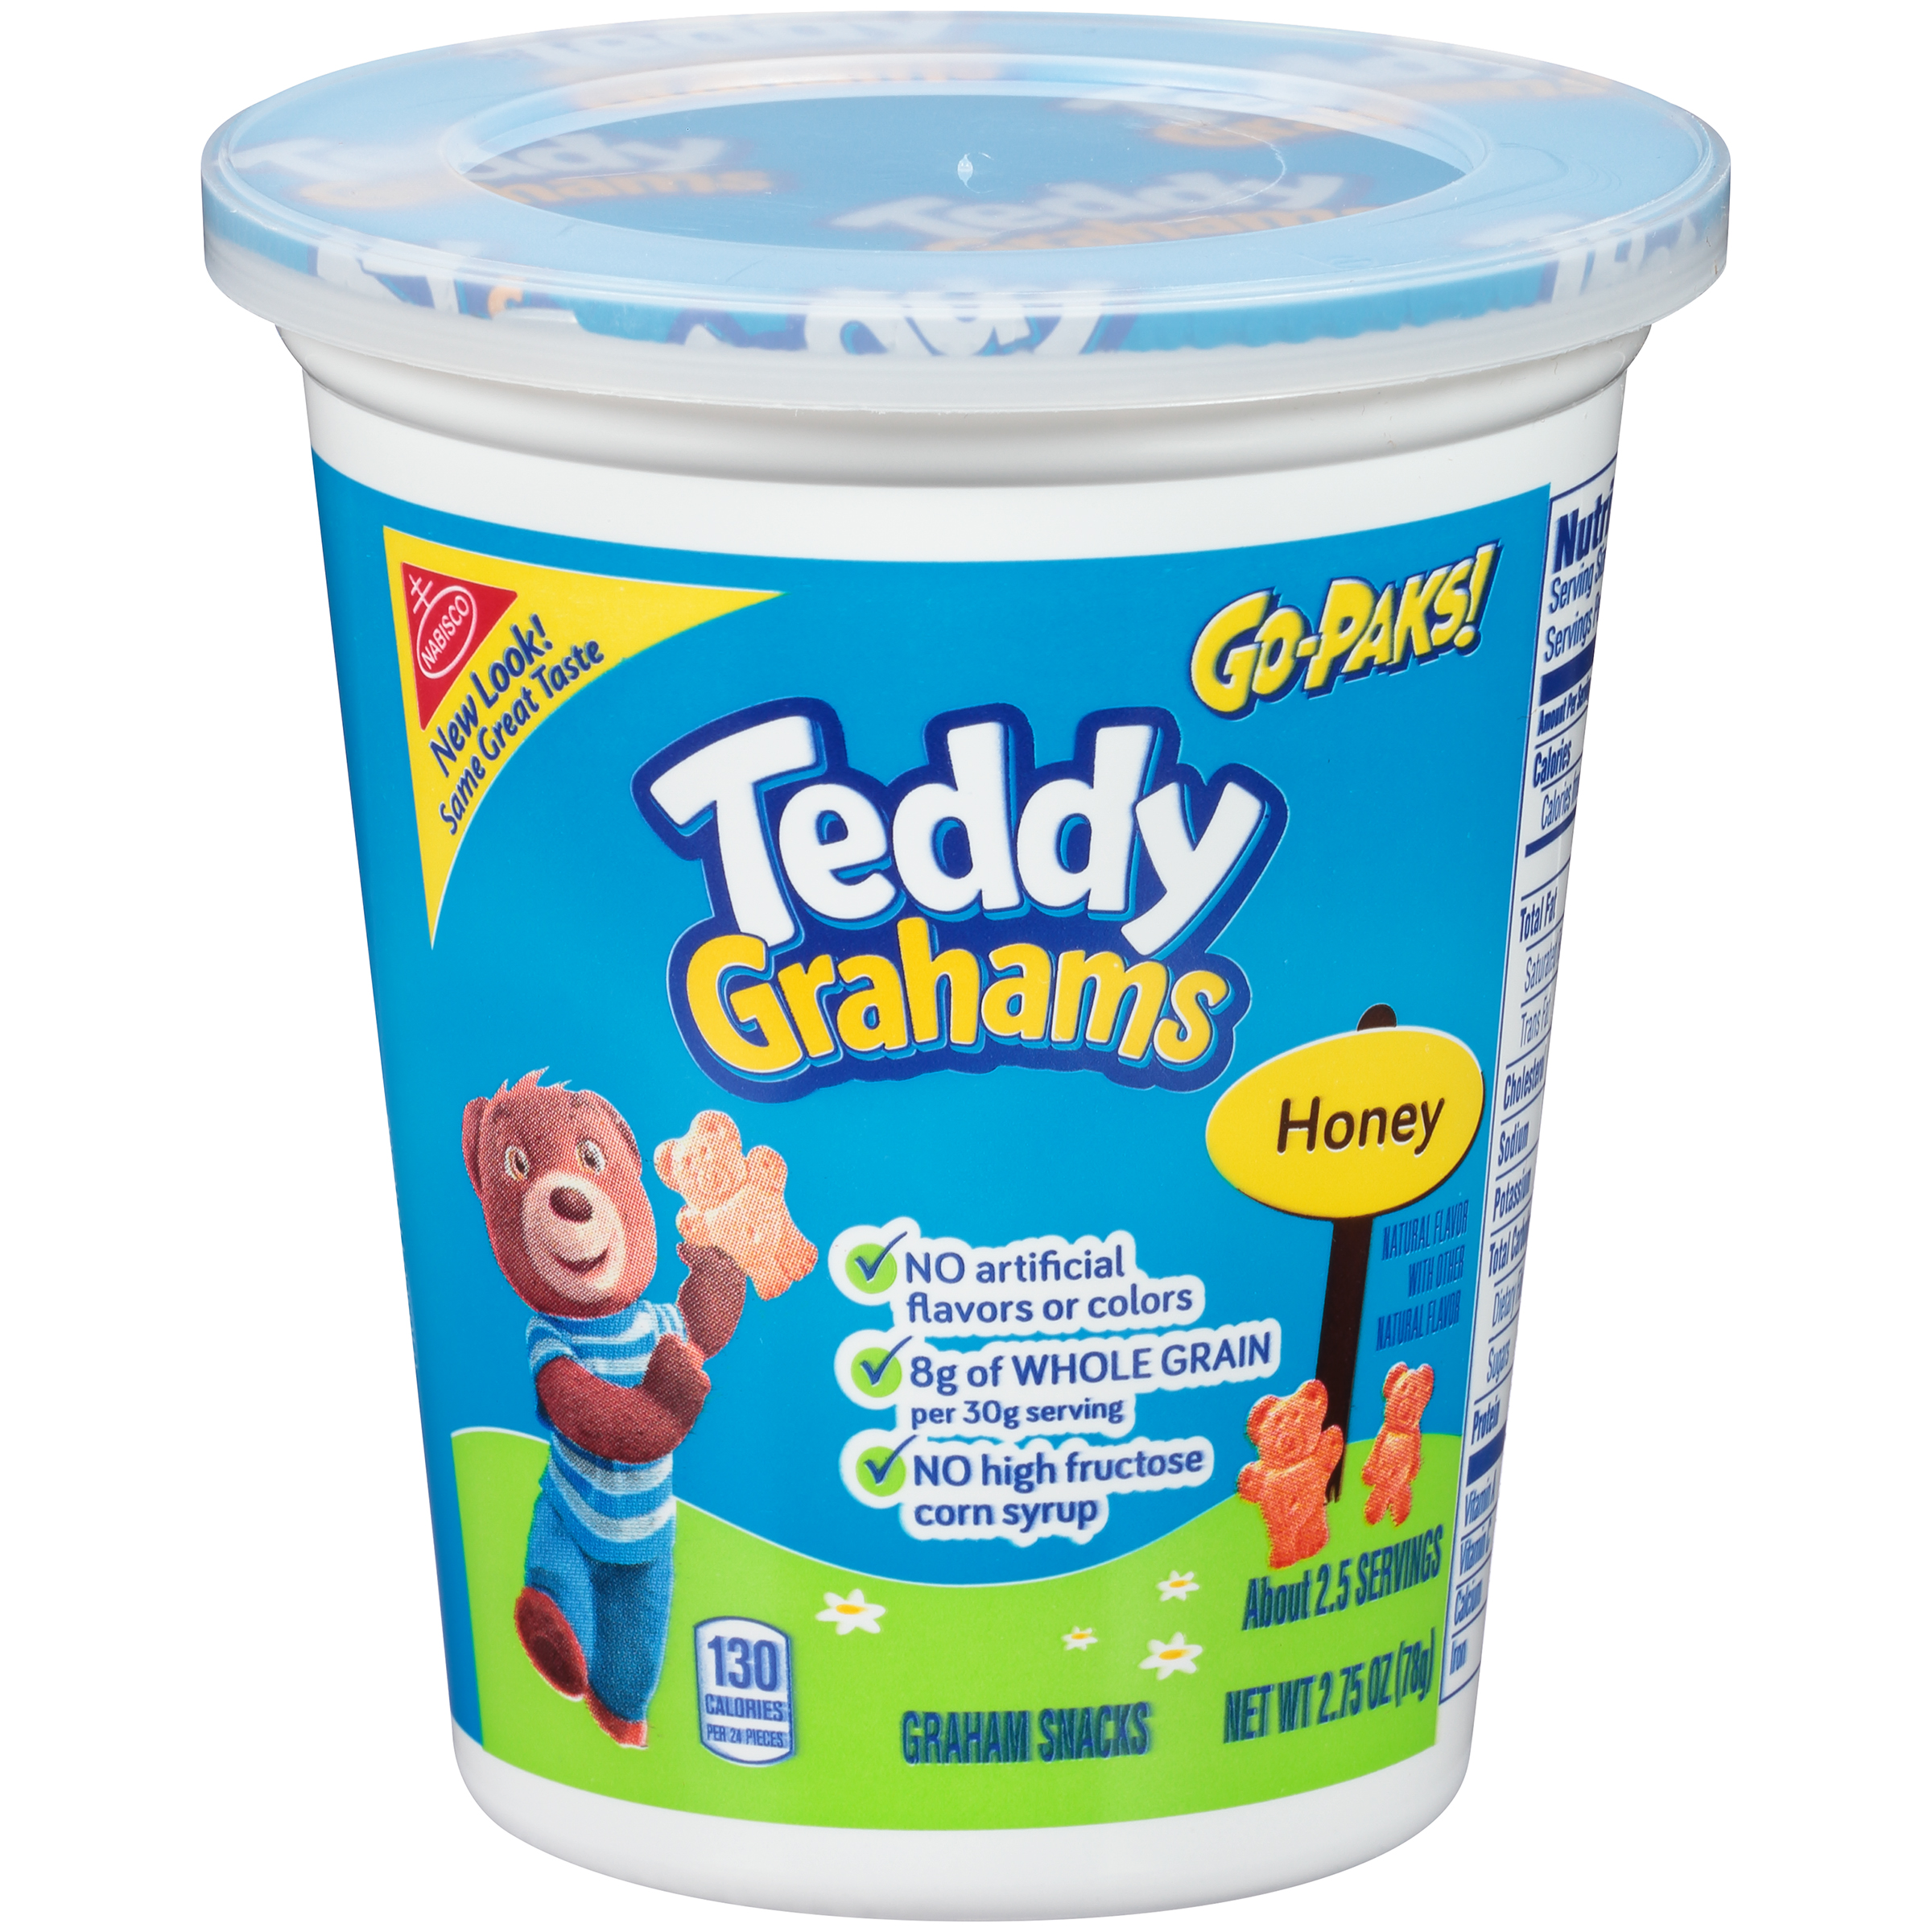 Teddy Grahams Honey Graham Snacks - Go-Pak, 2.8 oz